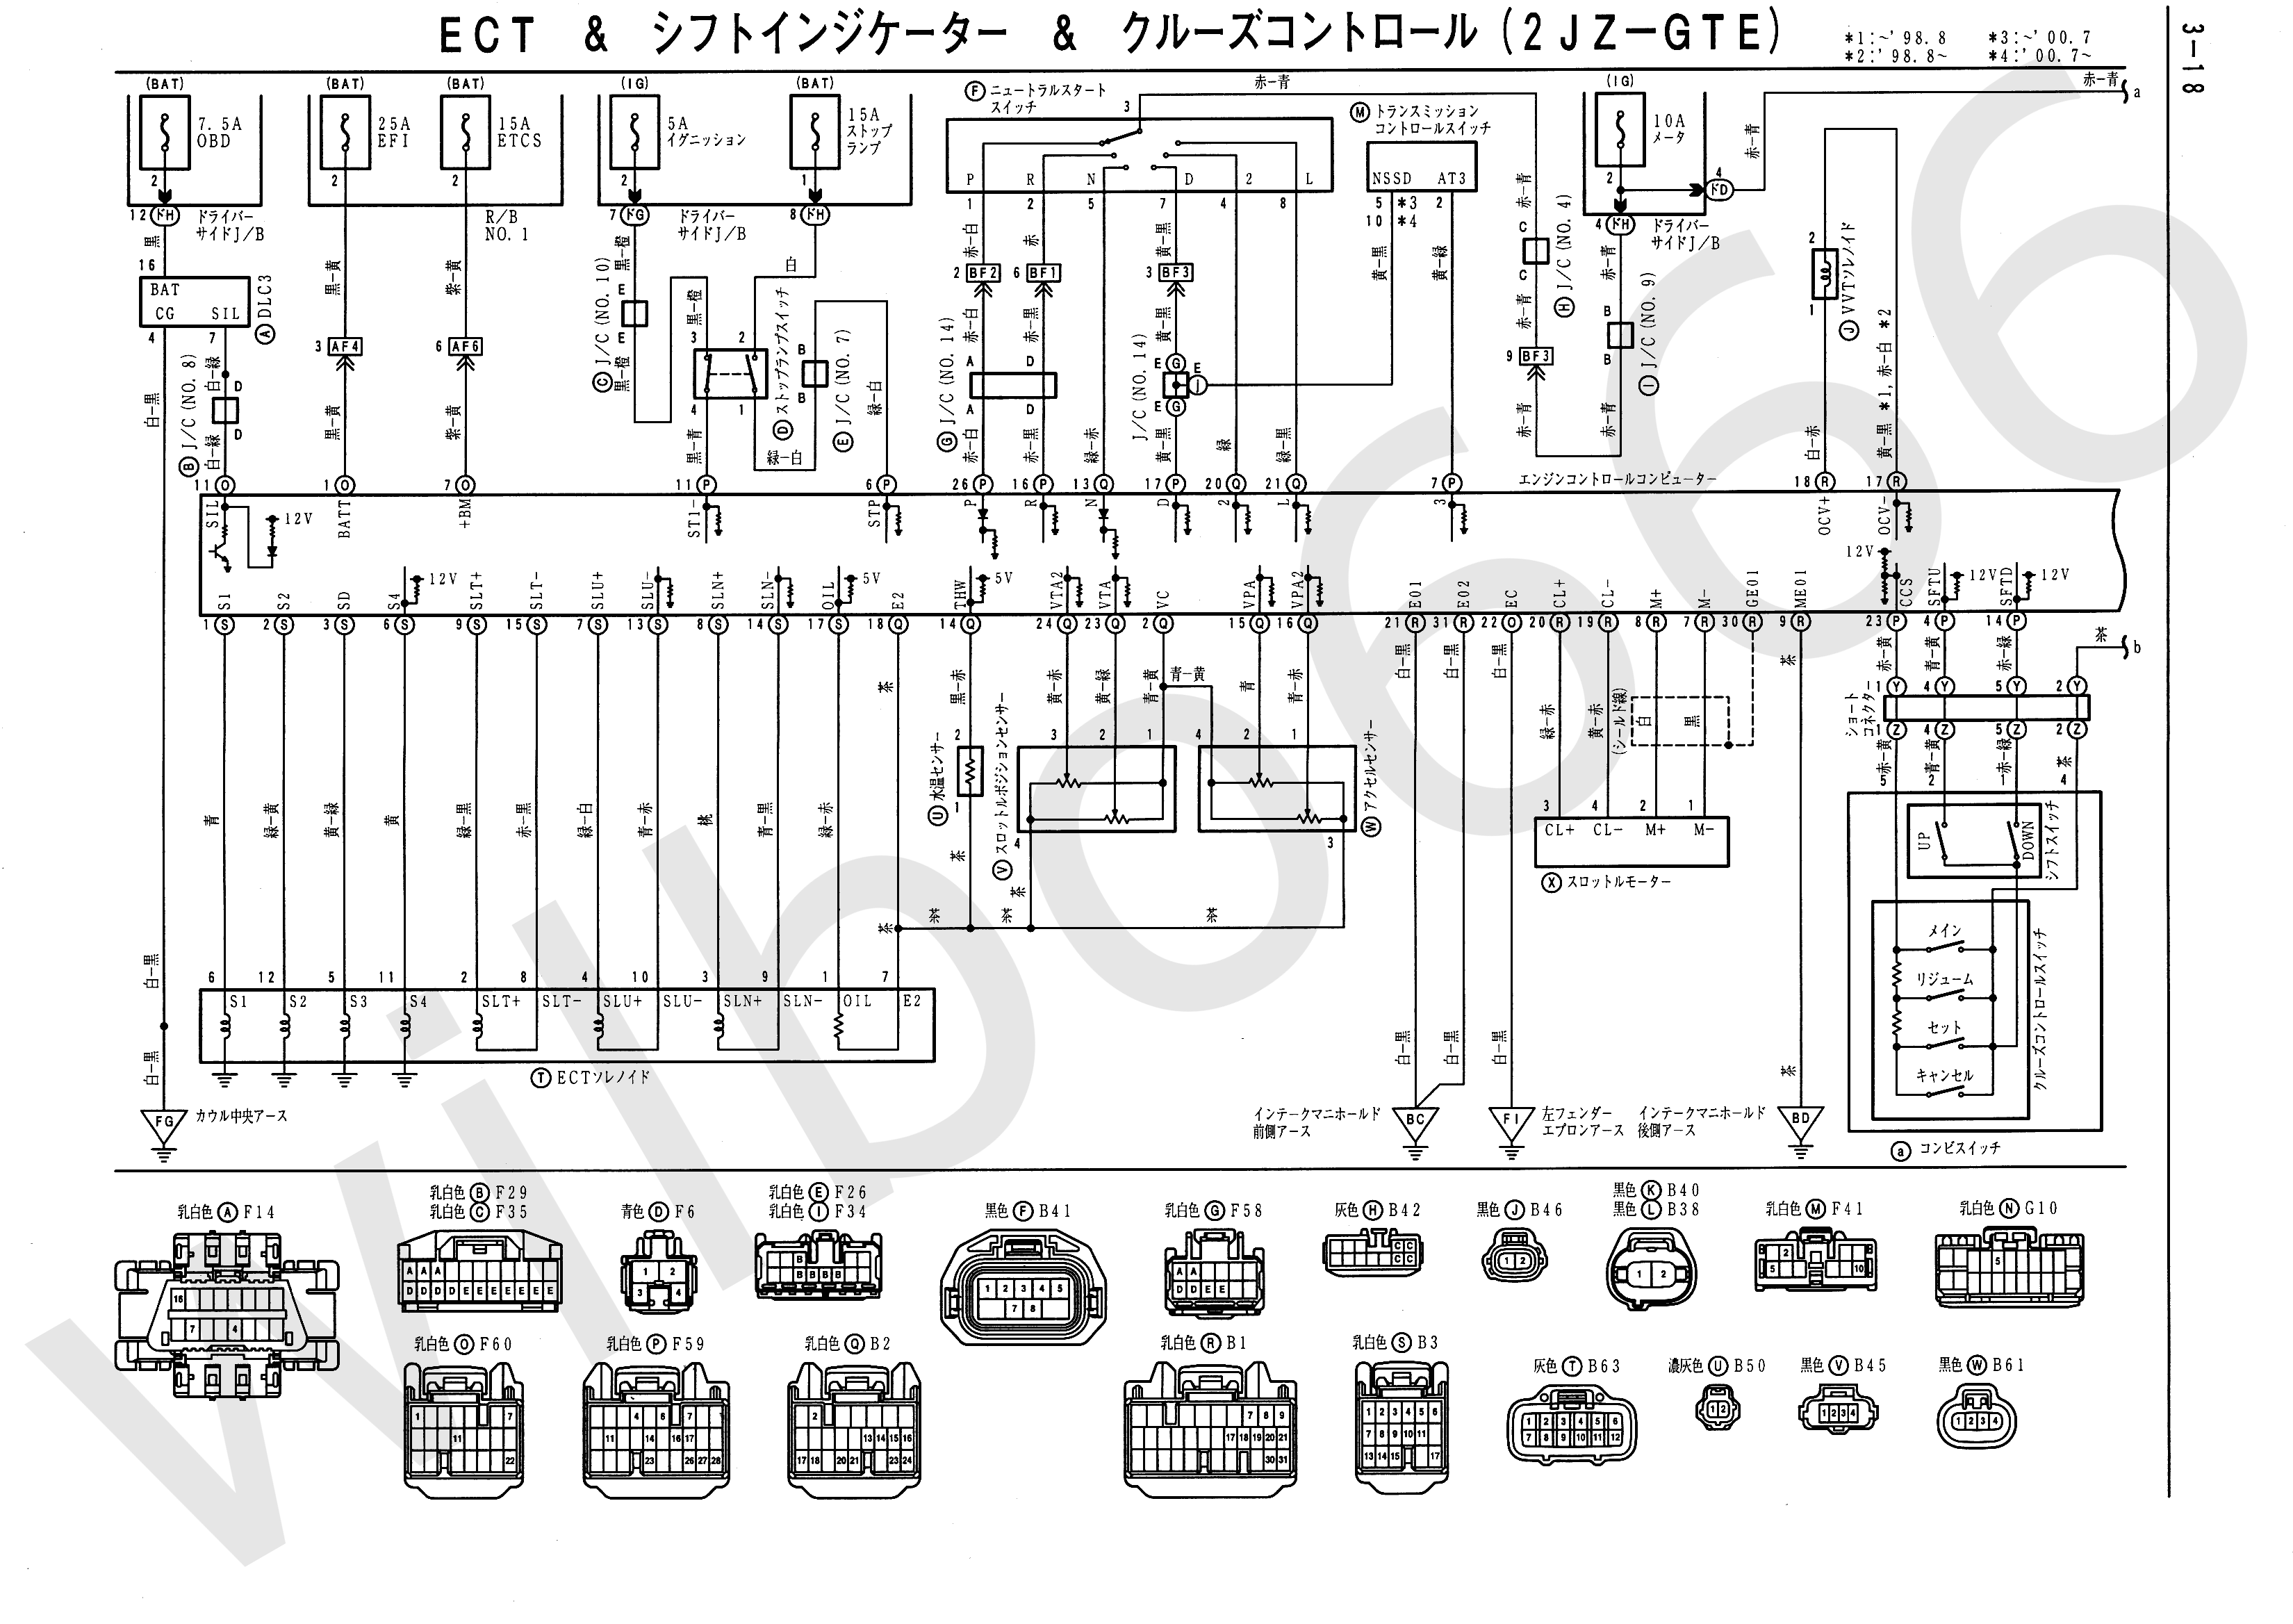 Civic Obd2 Wire Harnes Schematic